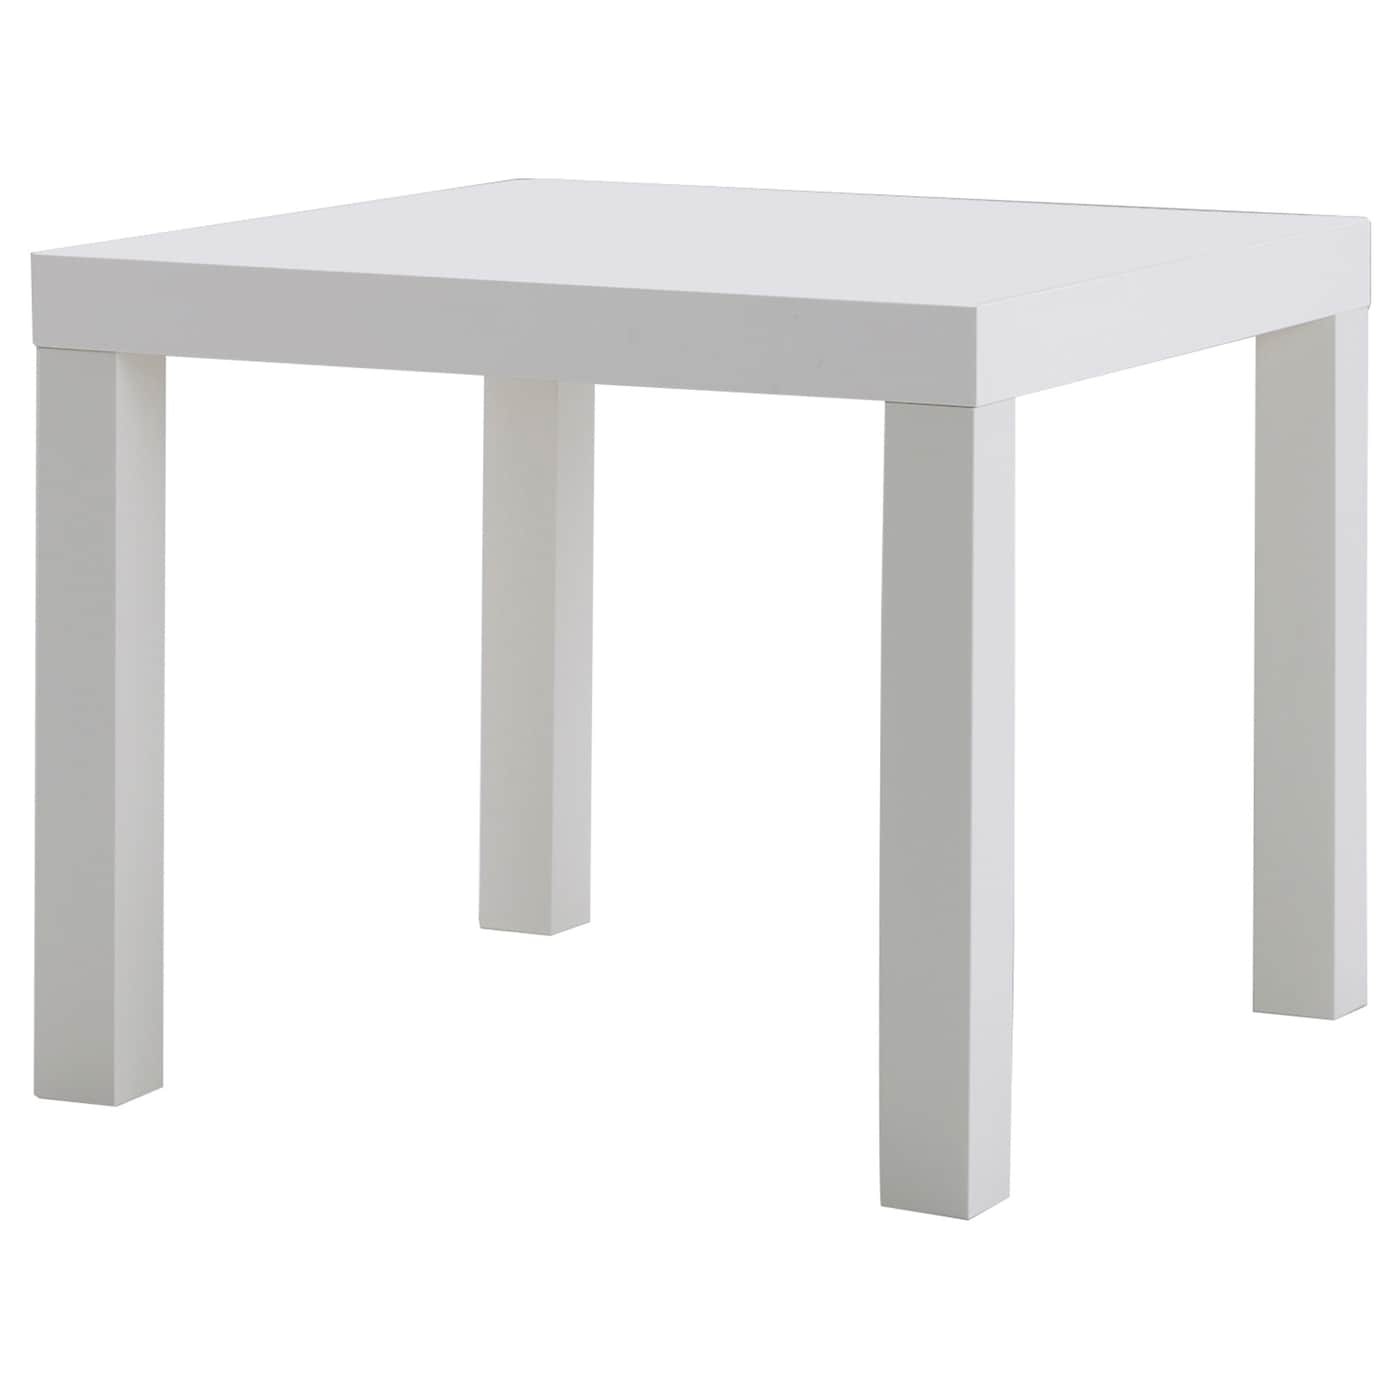 lack side table white 55 x 55 cm ikea. Black Bedroom Furniture Sets. Home Design Ideas